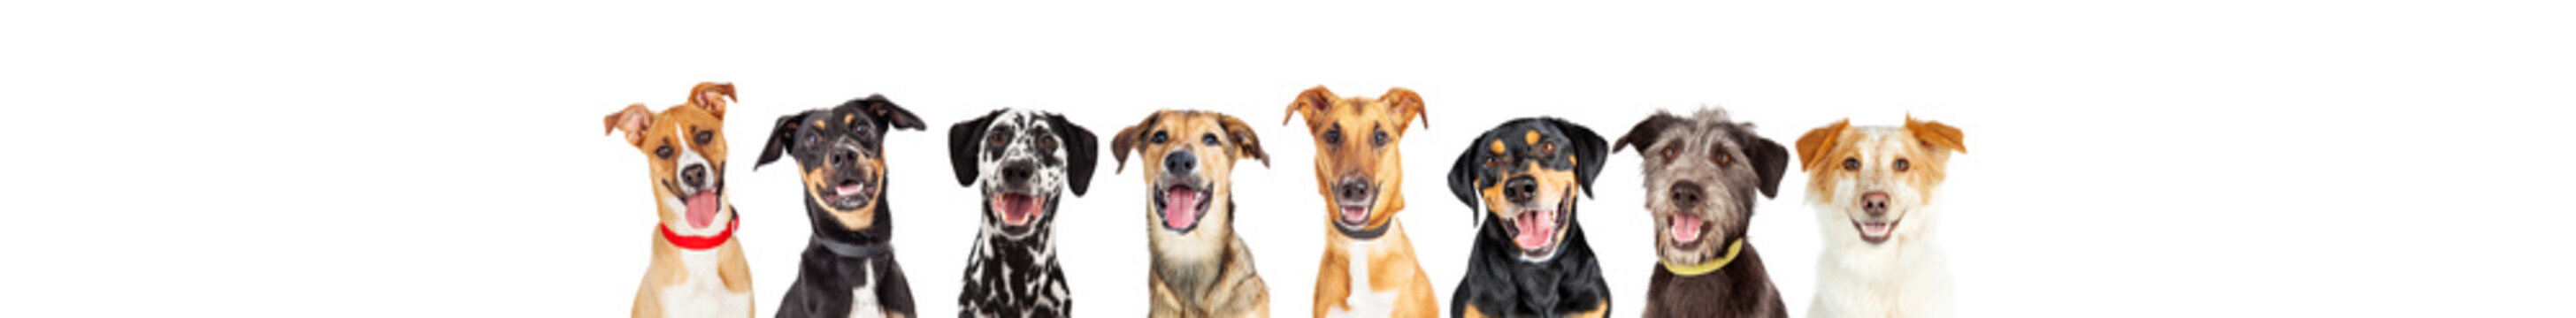 Happy Dogs In A Row - Leaderboard